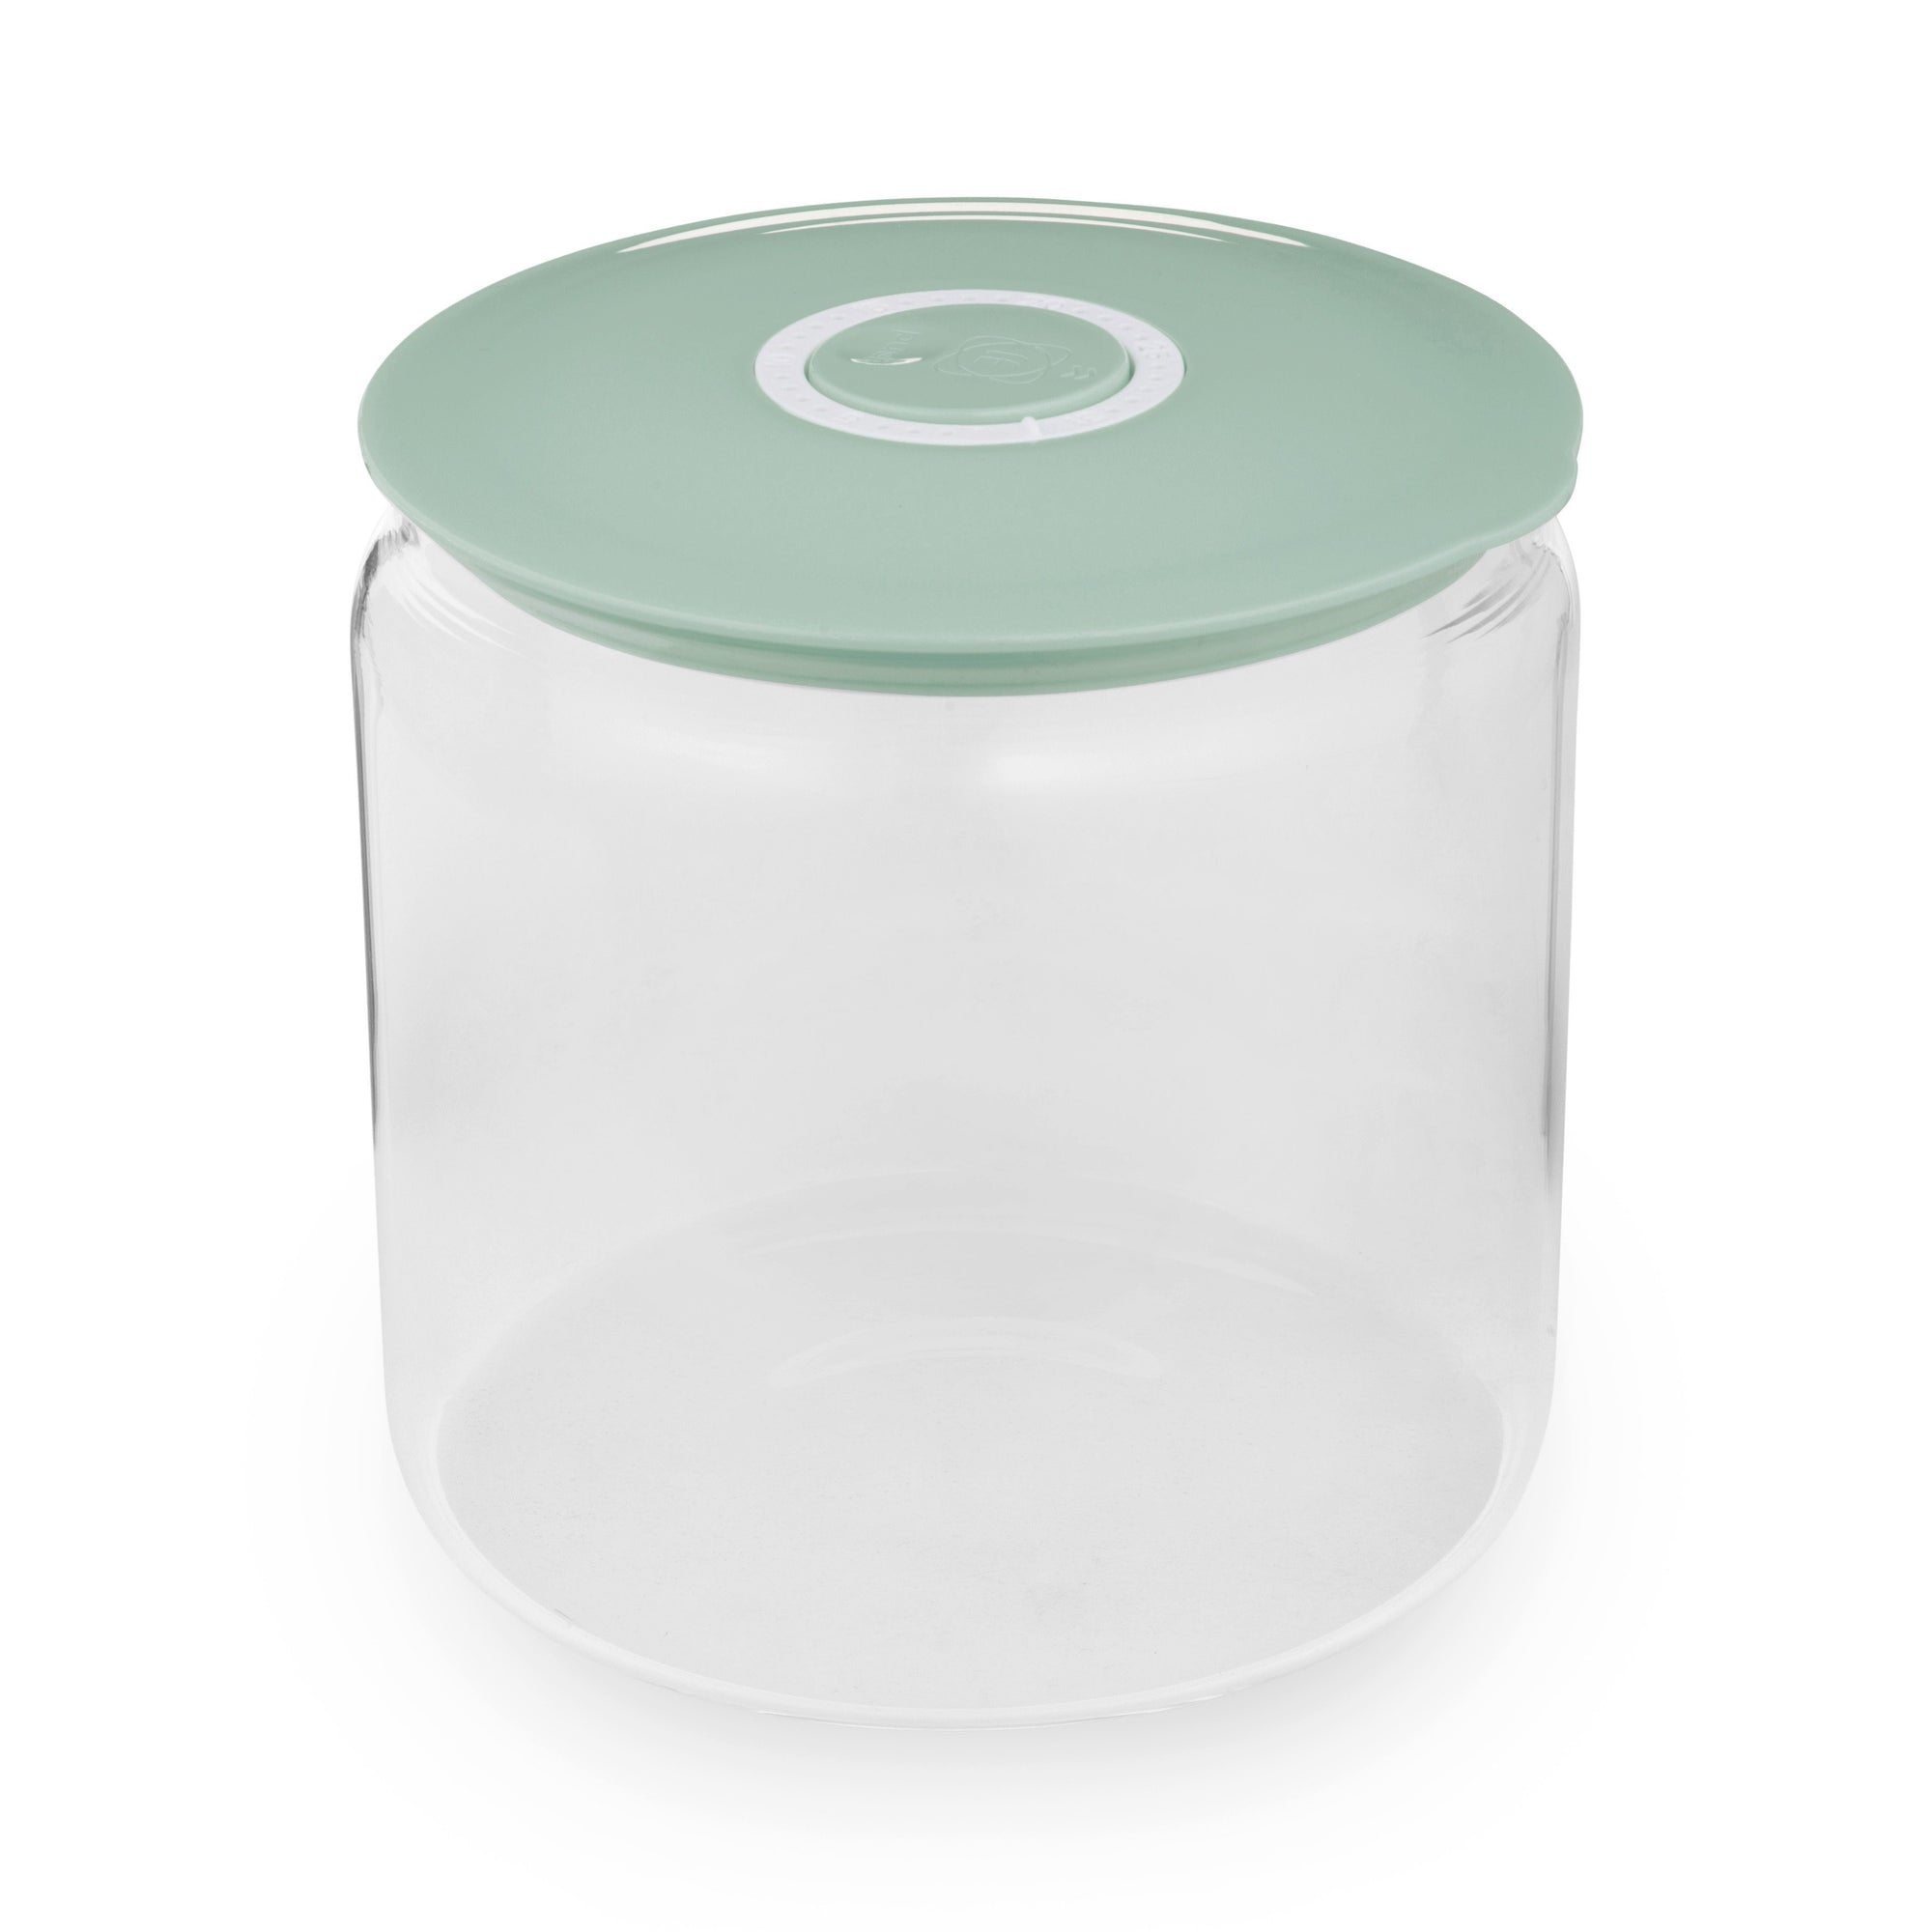 Luvele 2 Litre | (2.1qt.) Glass Yogurt Container | Compatible with Pure Plus Yogurt Maker